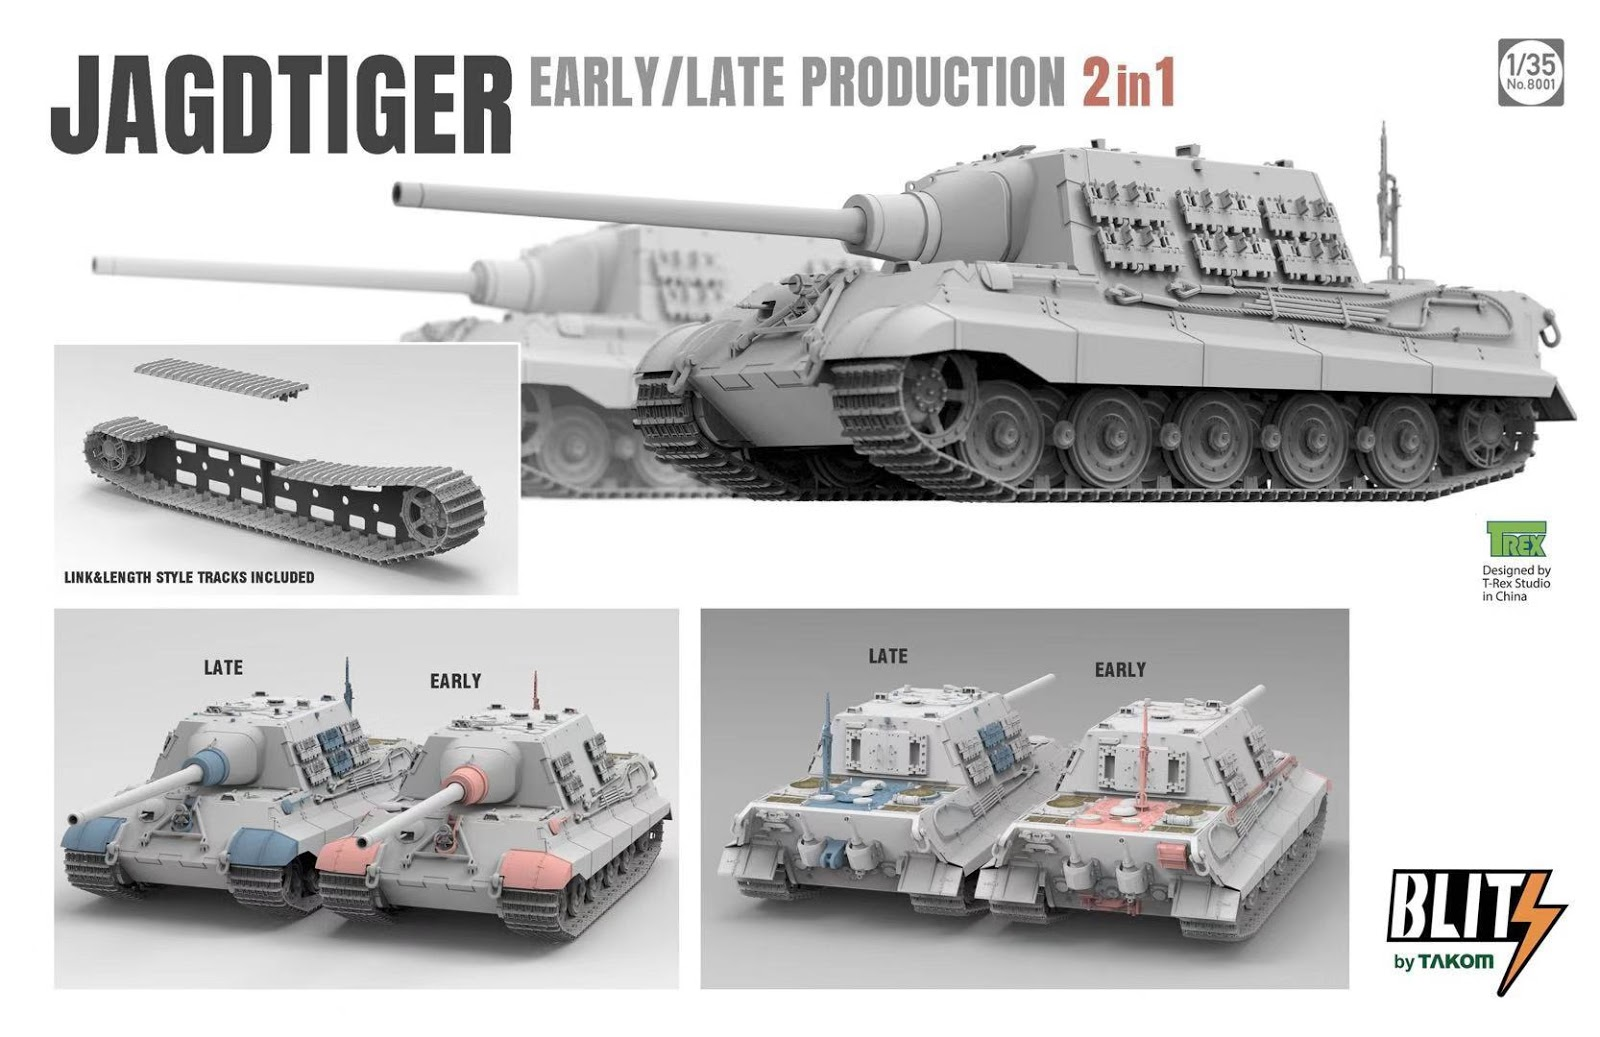 Kuvahaun tulos haulle takom Sd.Kfz.186 Jagdtiger early/late production 2 in 1